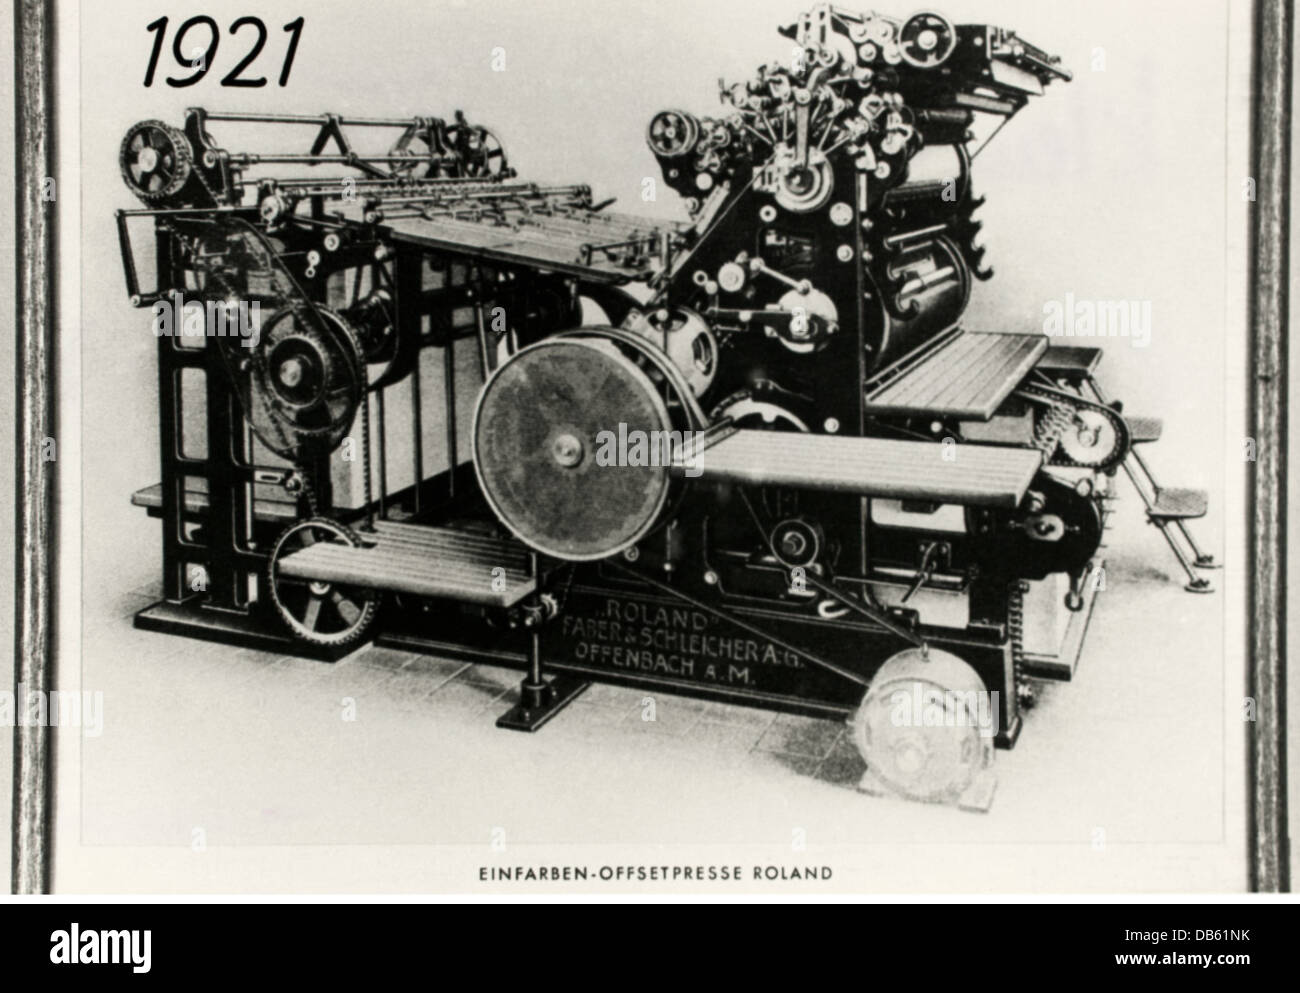 technics, typography, printing press, Roland, Faber und Schleicher AG, Offenbach, Germany, 1921, Additional-Rights - Stock Image